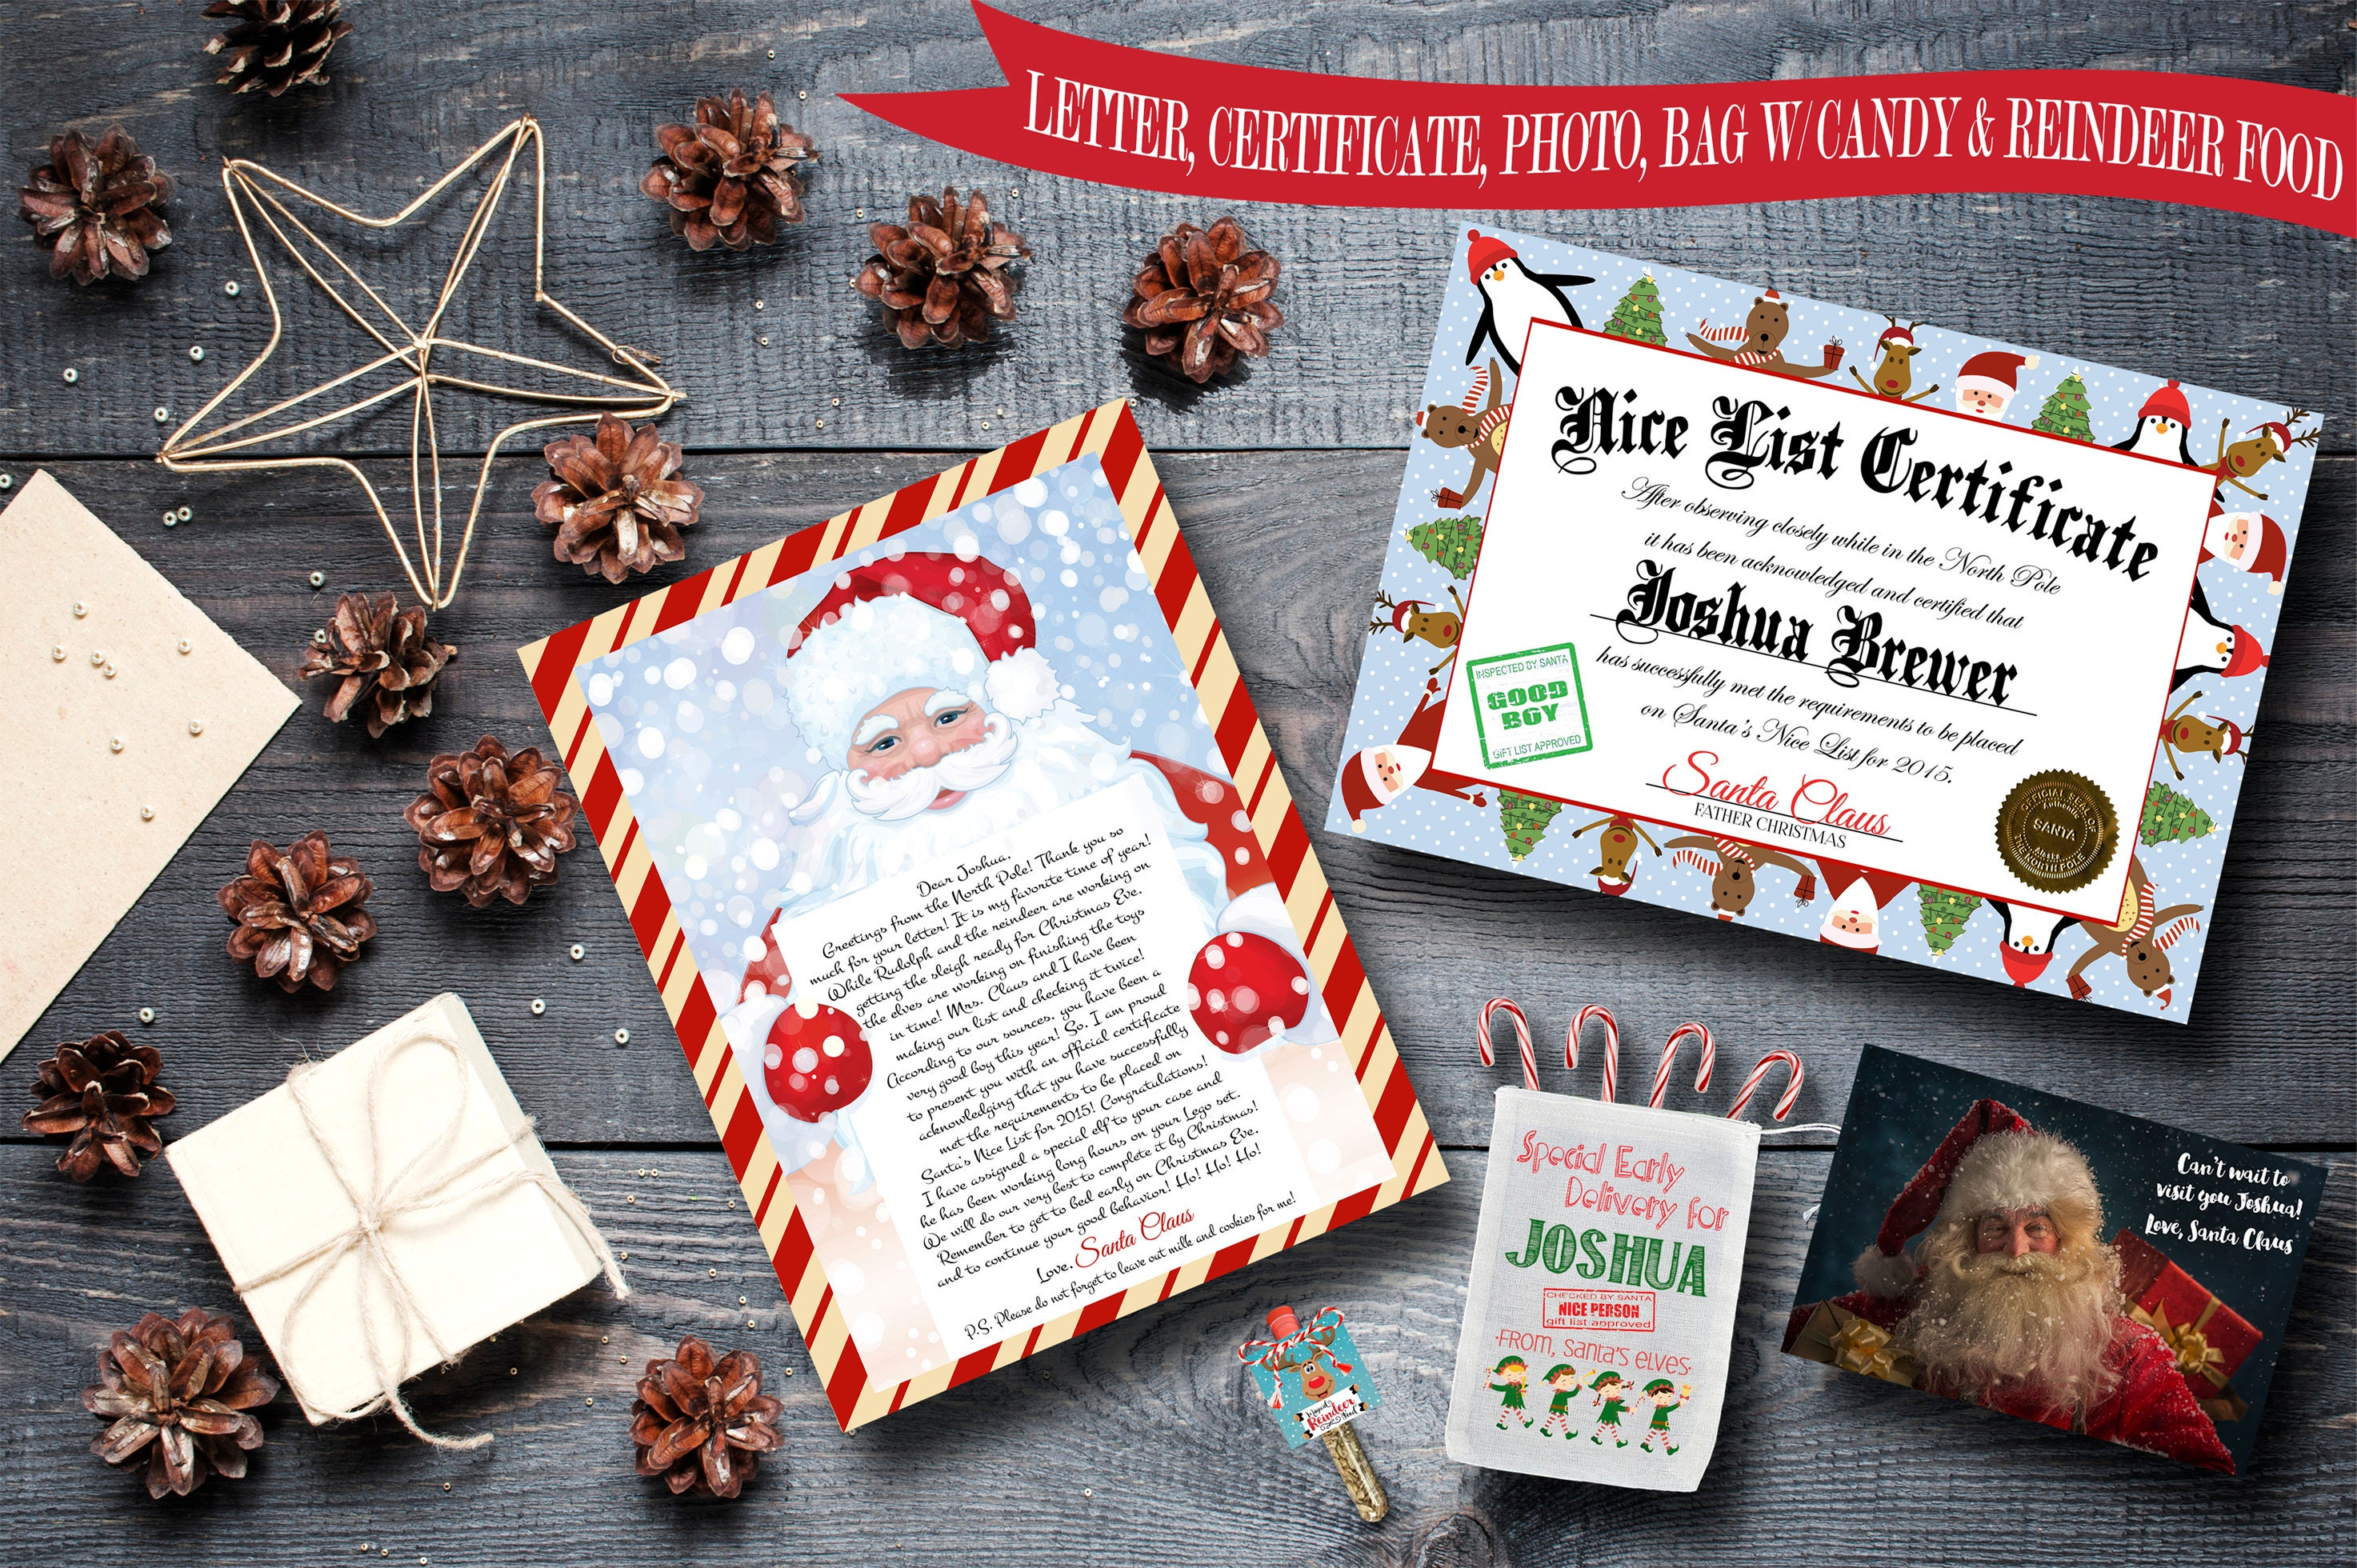 Christmas Package From Santa Claus  Letter From Santa Nice List